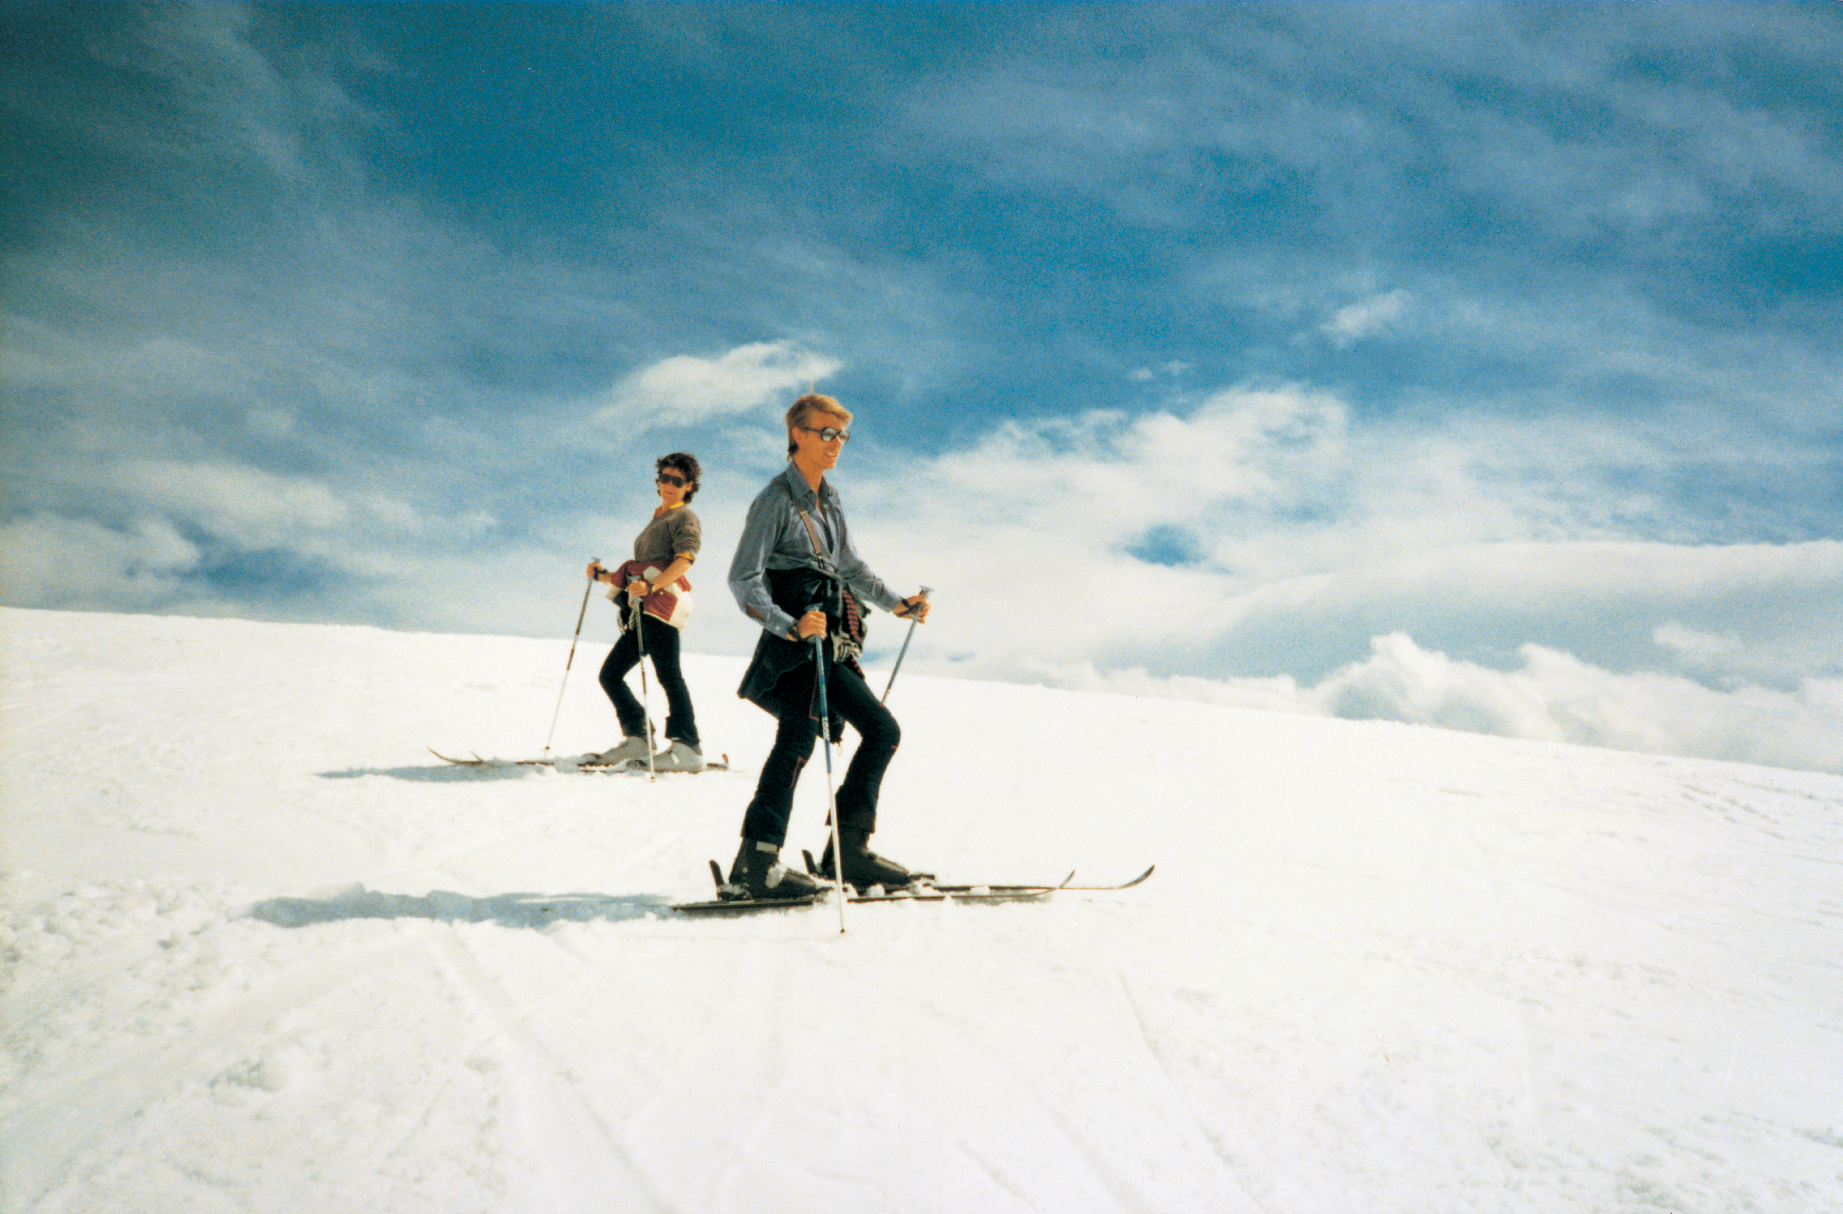 ©-1990-Claude-Nobs-Archives---David Bowie skiing 1.jpg